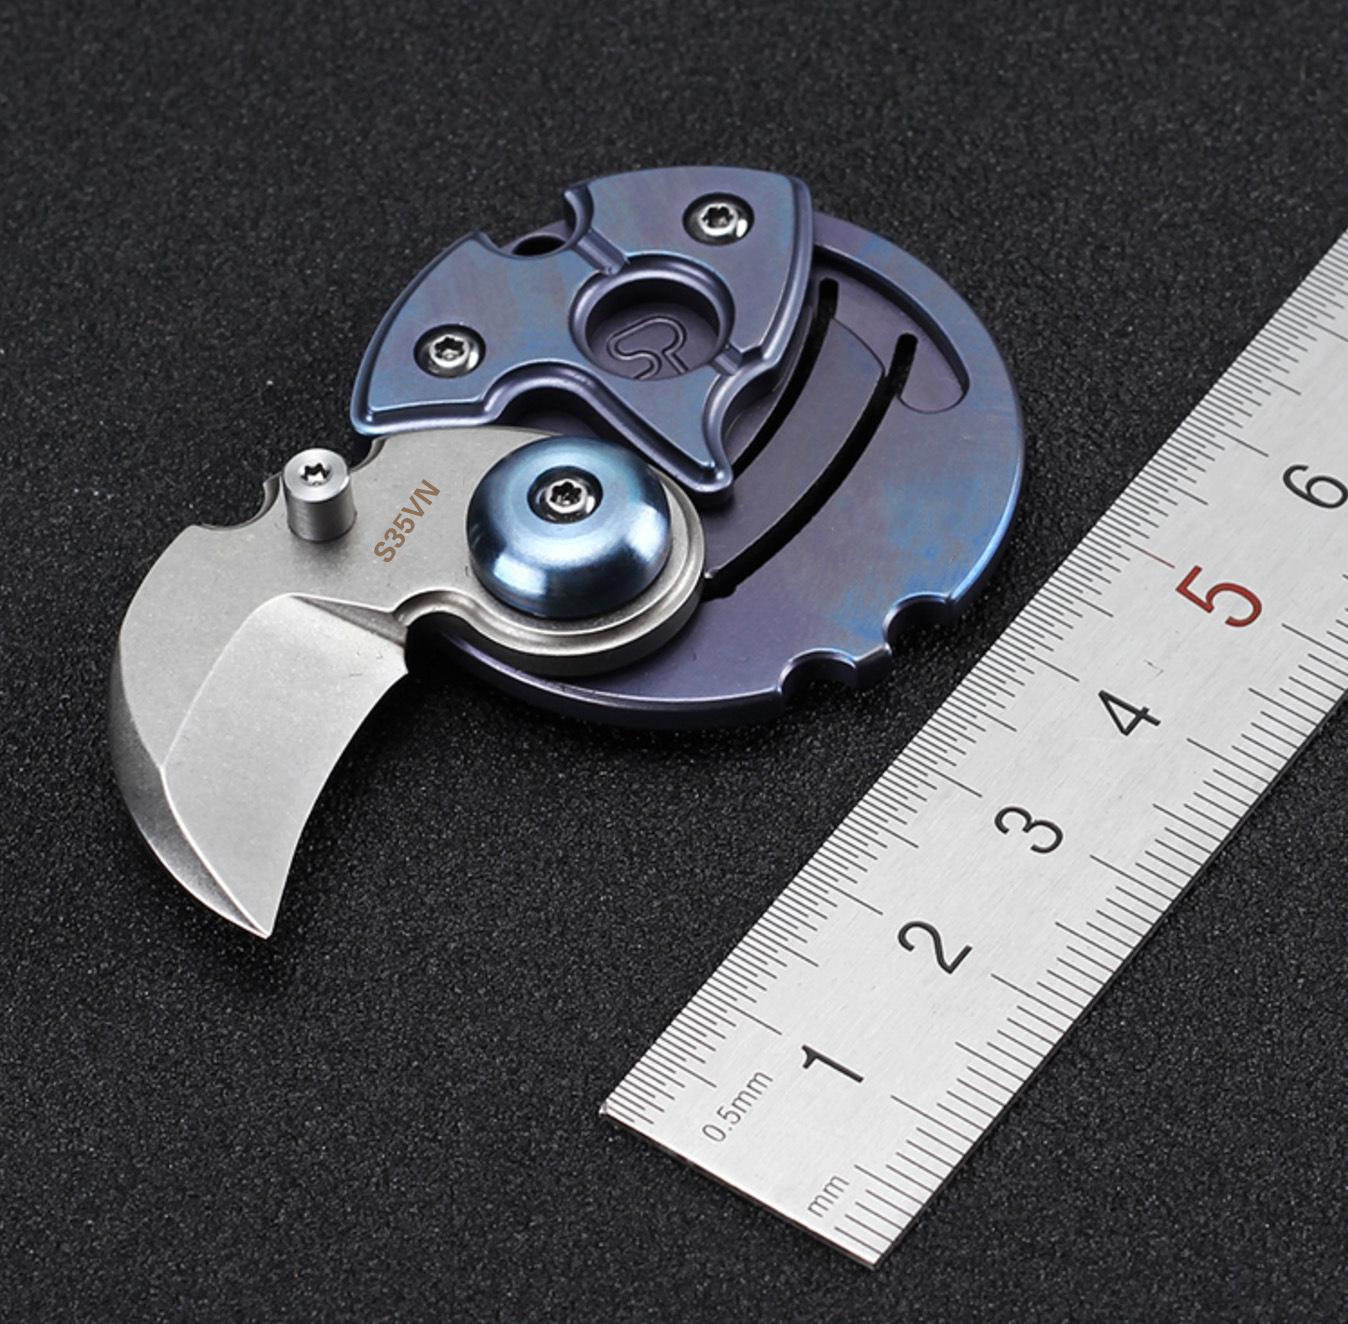 Outdoor multi-purpose titanium alloy folding self-defense knife S35VN mini coin knife key chain folding knife EDC tool